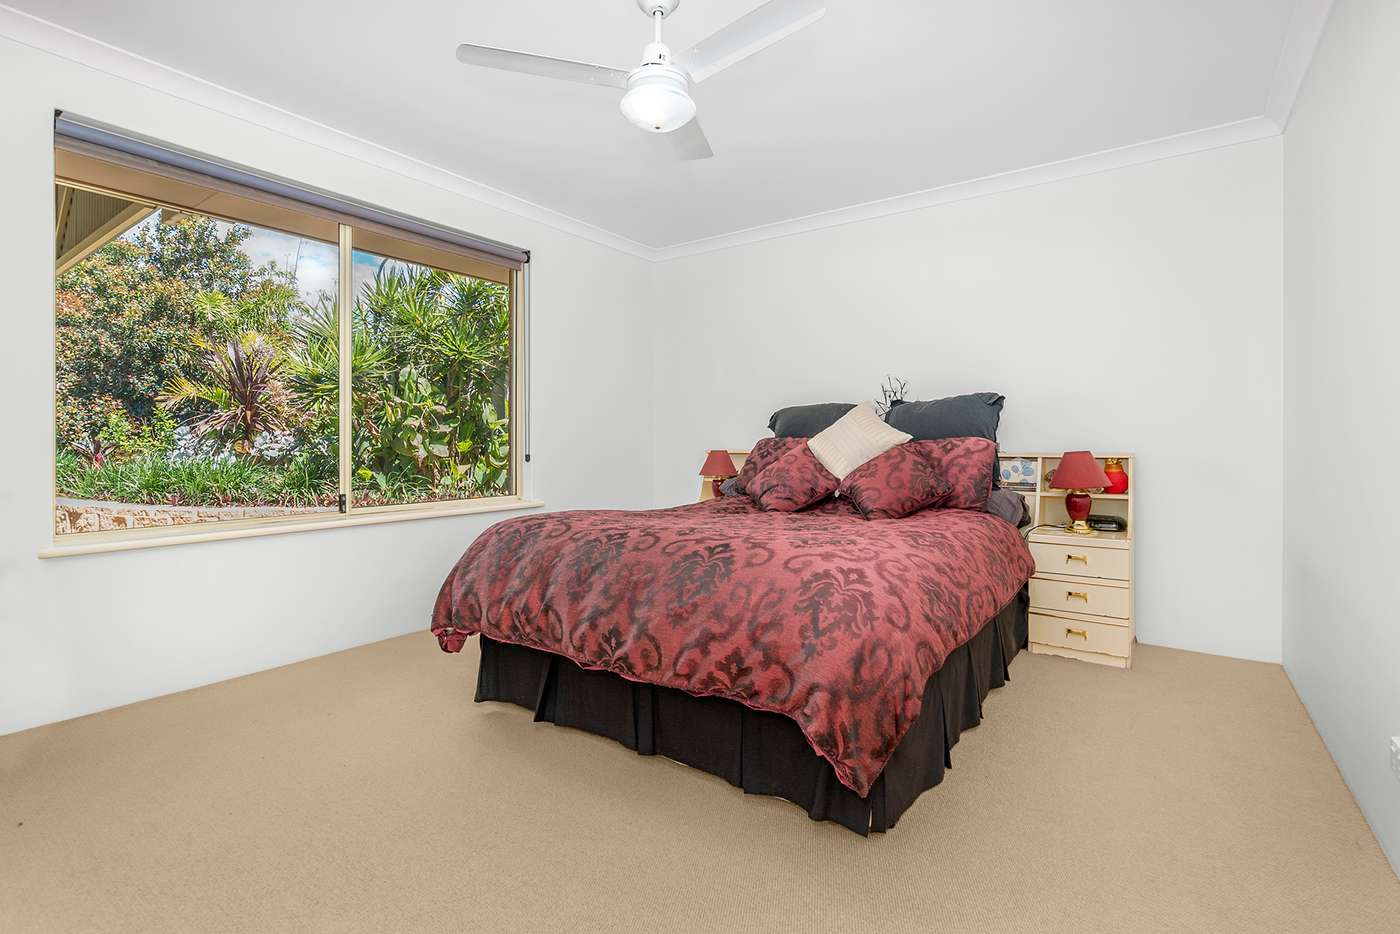 Sixth view of Homely house listing, 3 Catspaw Court, Strathalbyn WA 6530